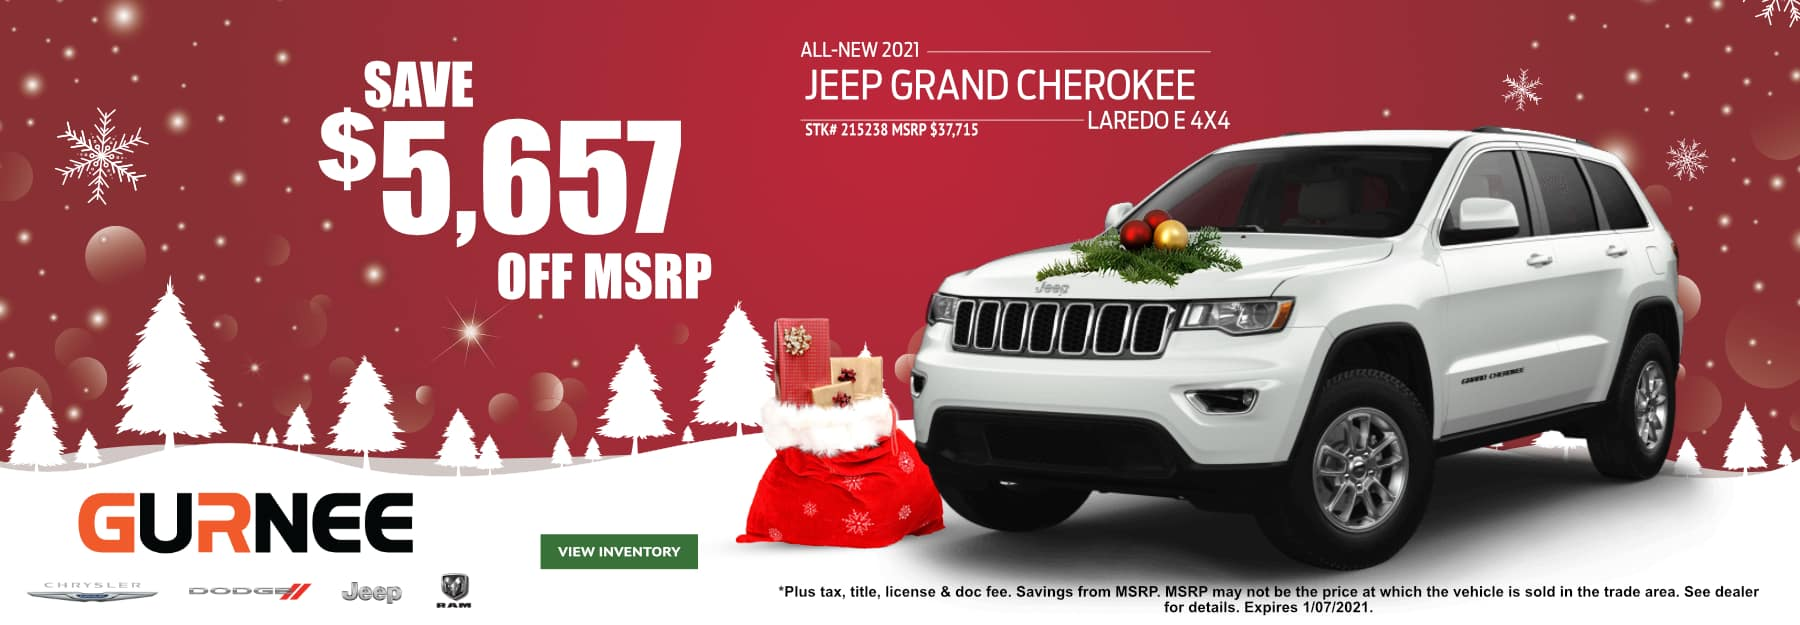 December-2020 Grand Cherokee_Gurnee